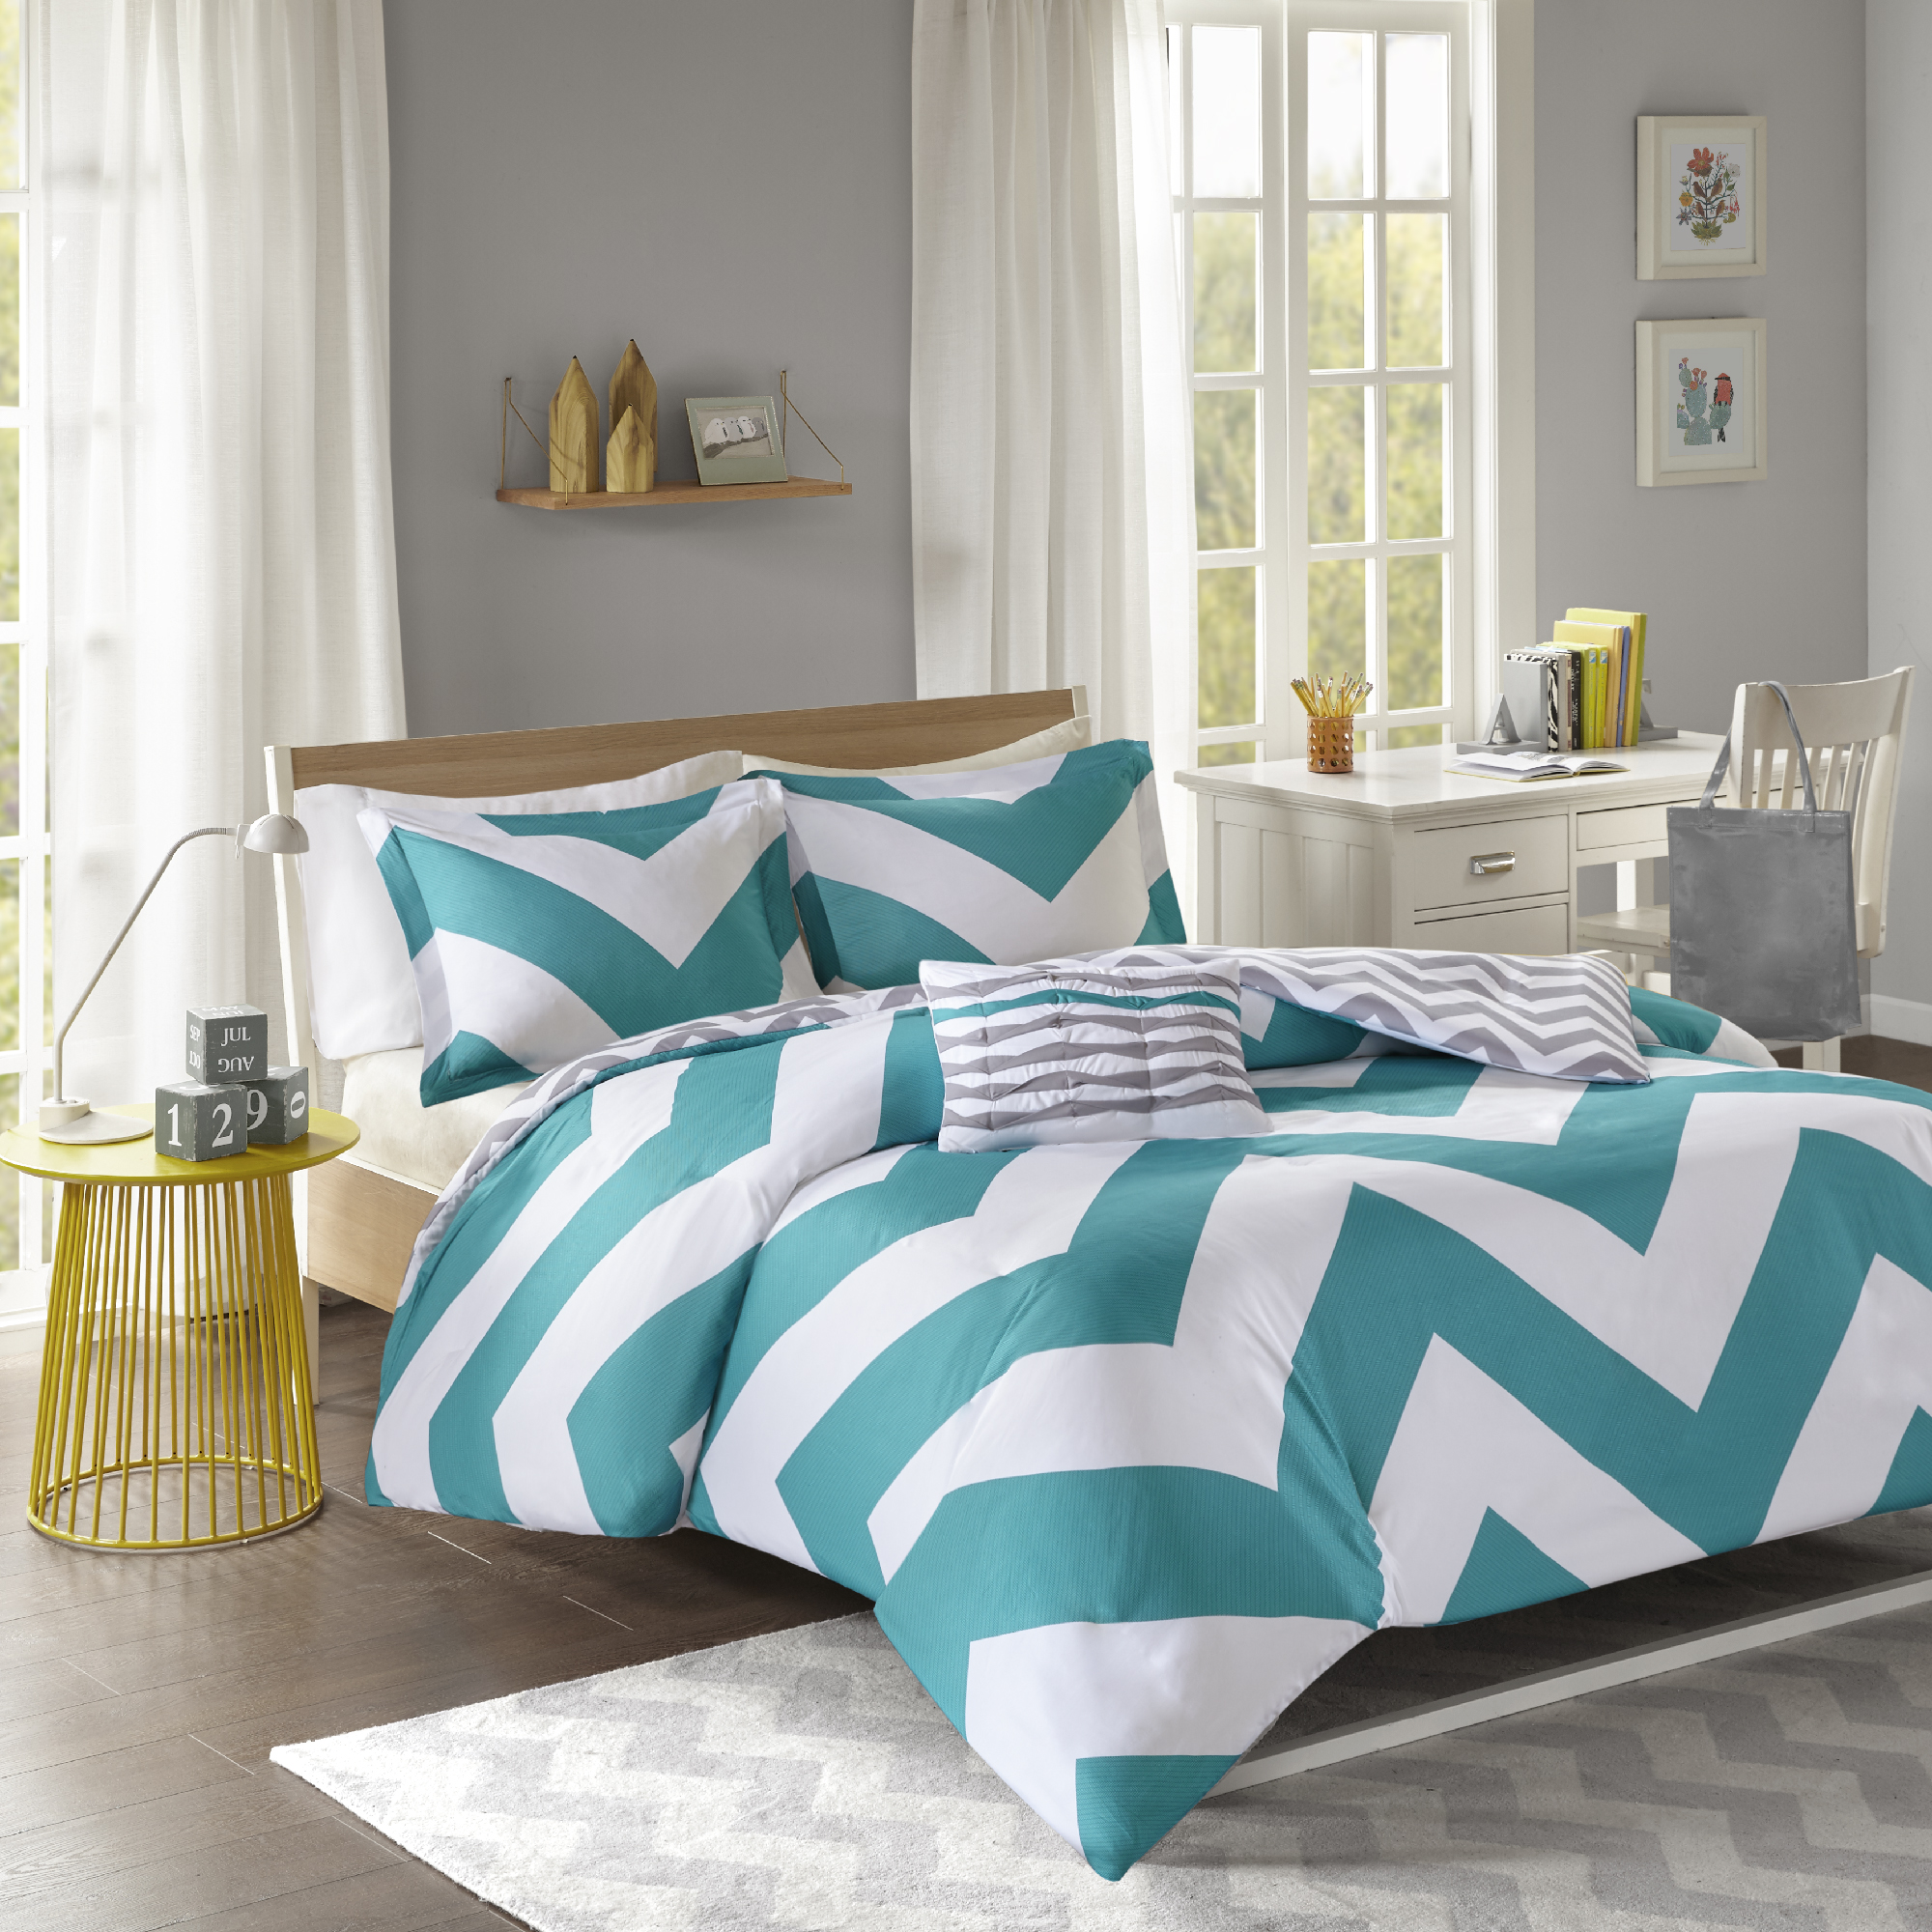 Home Essence Teen Leo Ultra Soft Reversible Duvet Cover Set